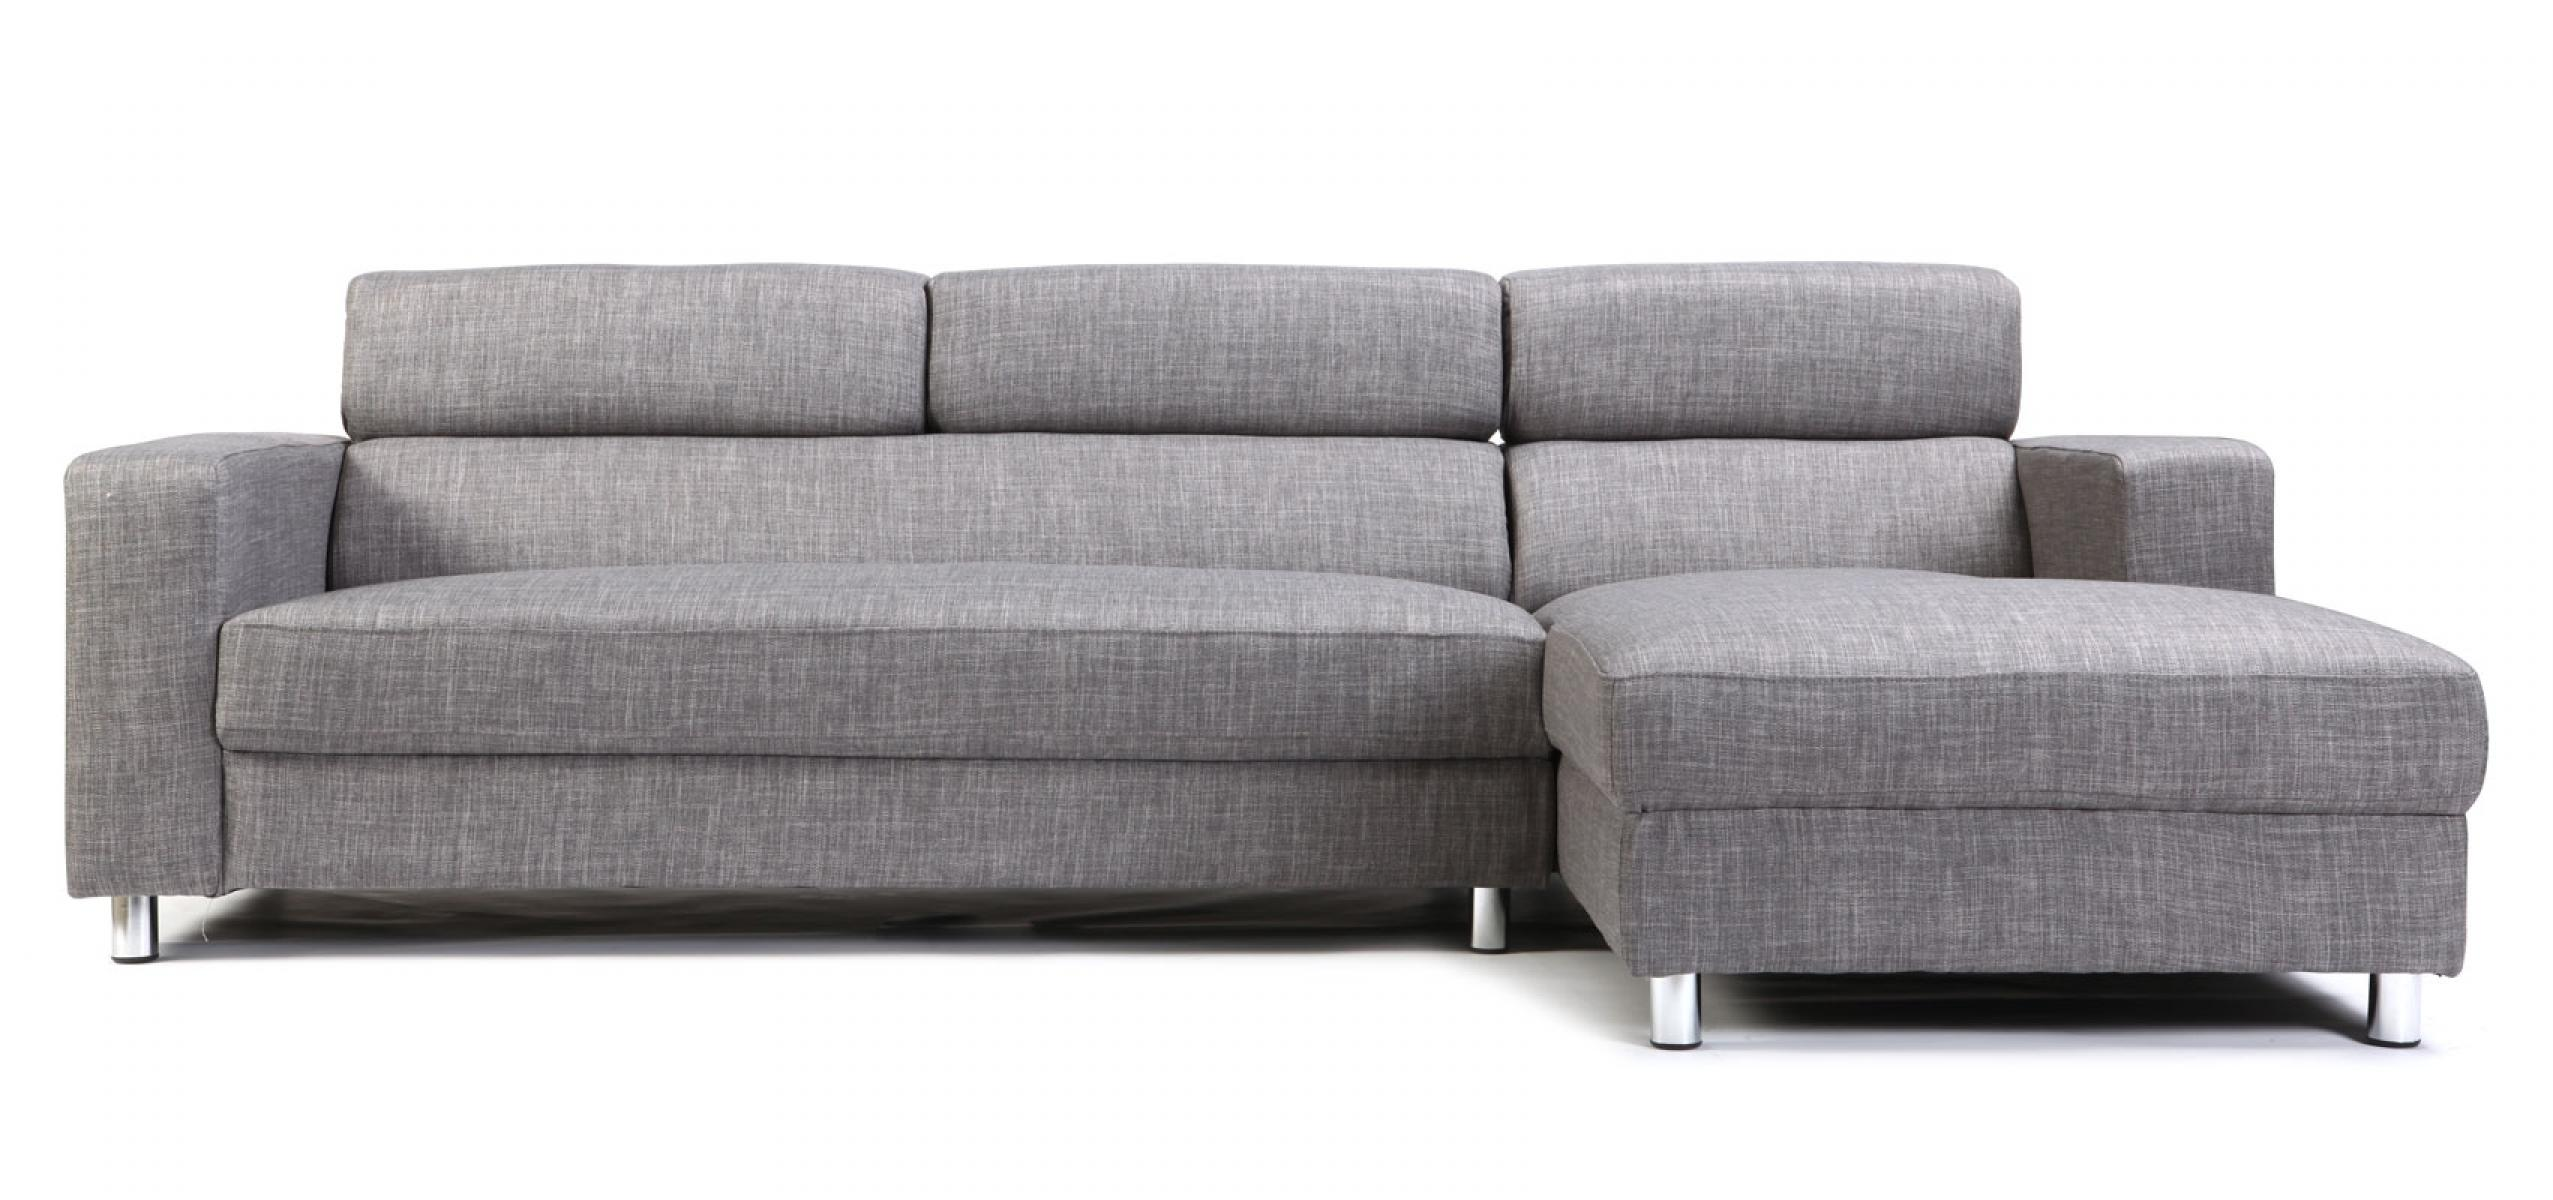 Canap convertible gris royal sofa id e de canap et for Canape cuir convertible gris